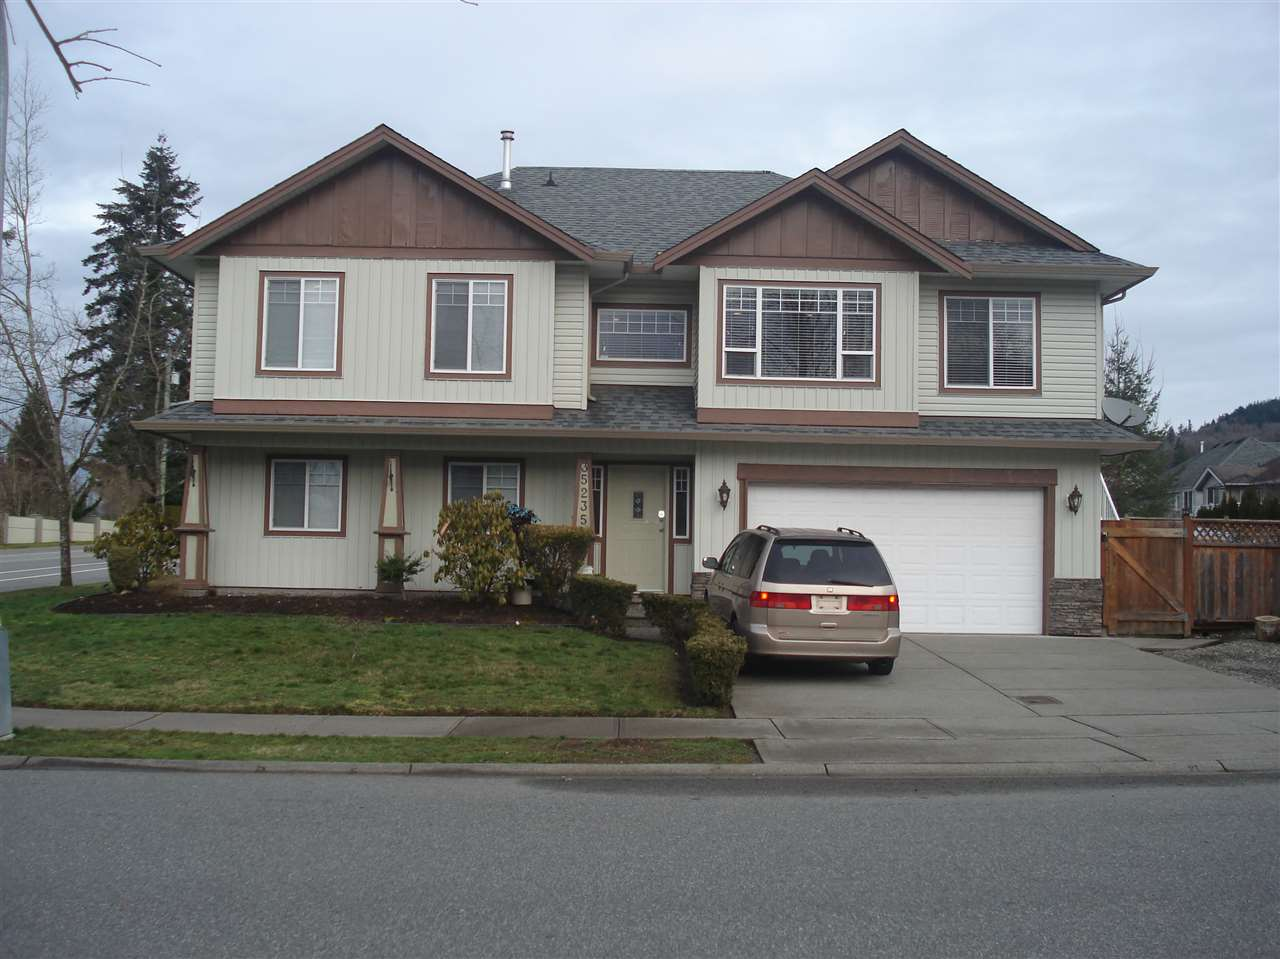 Main Photo: 35235 FIRDALE Avenue in Abbotsford: Abbotsford East House for sale : MLS(r) # R2031468